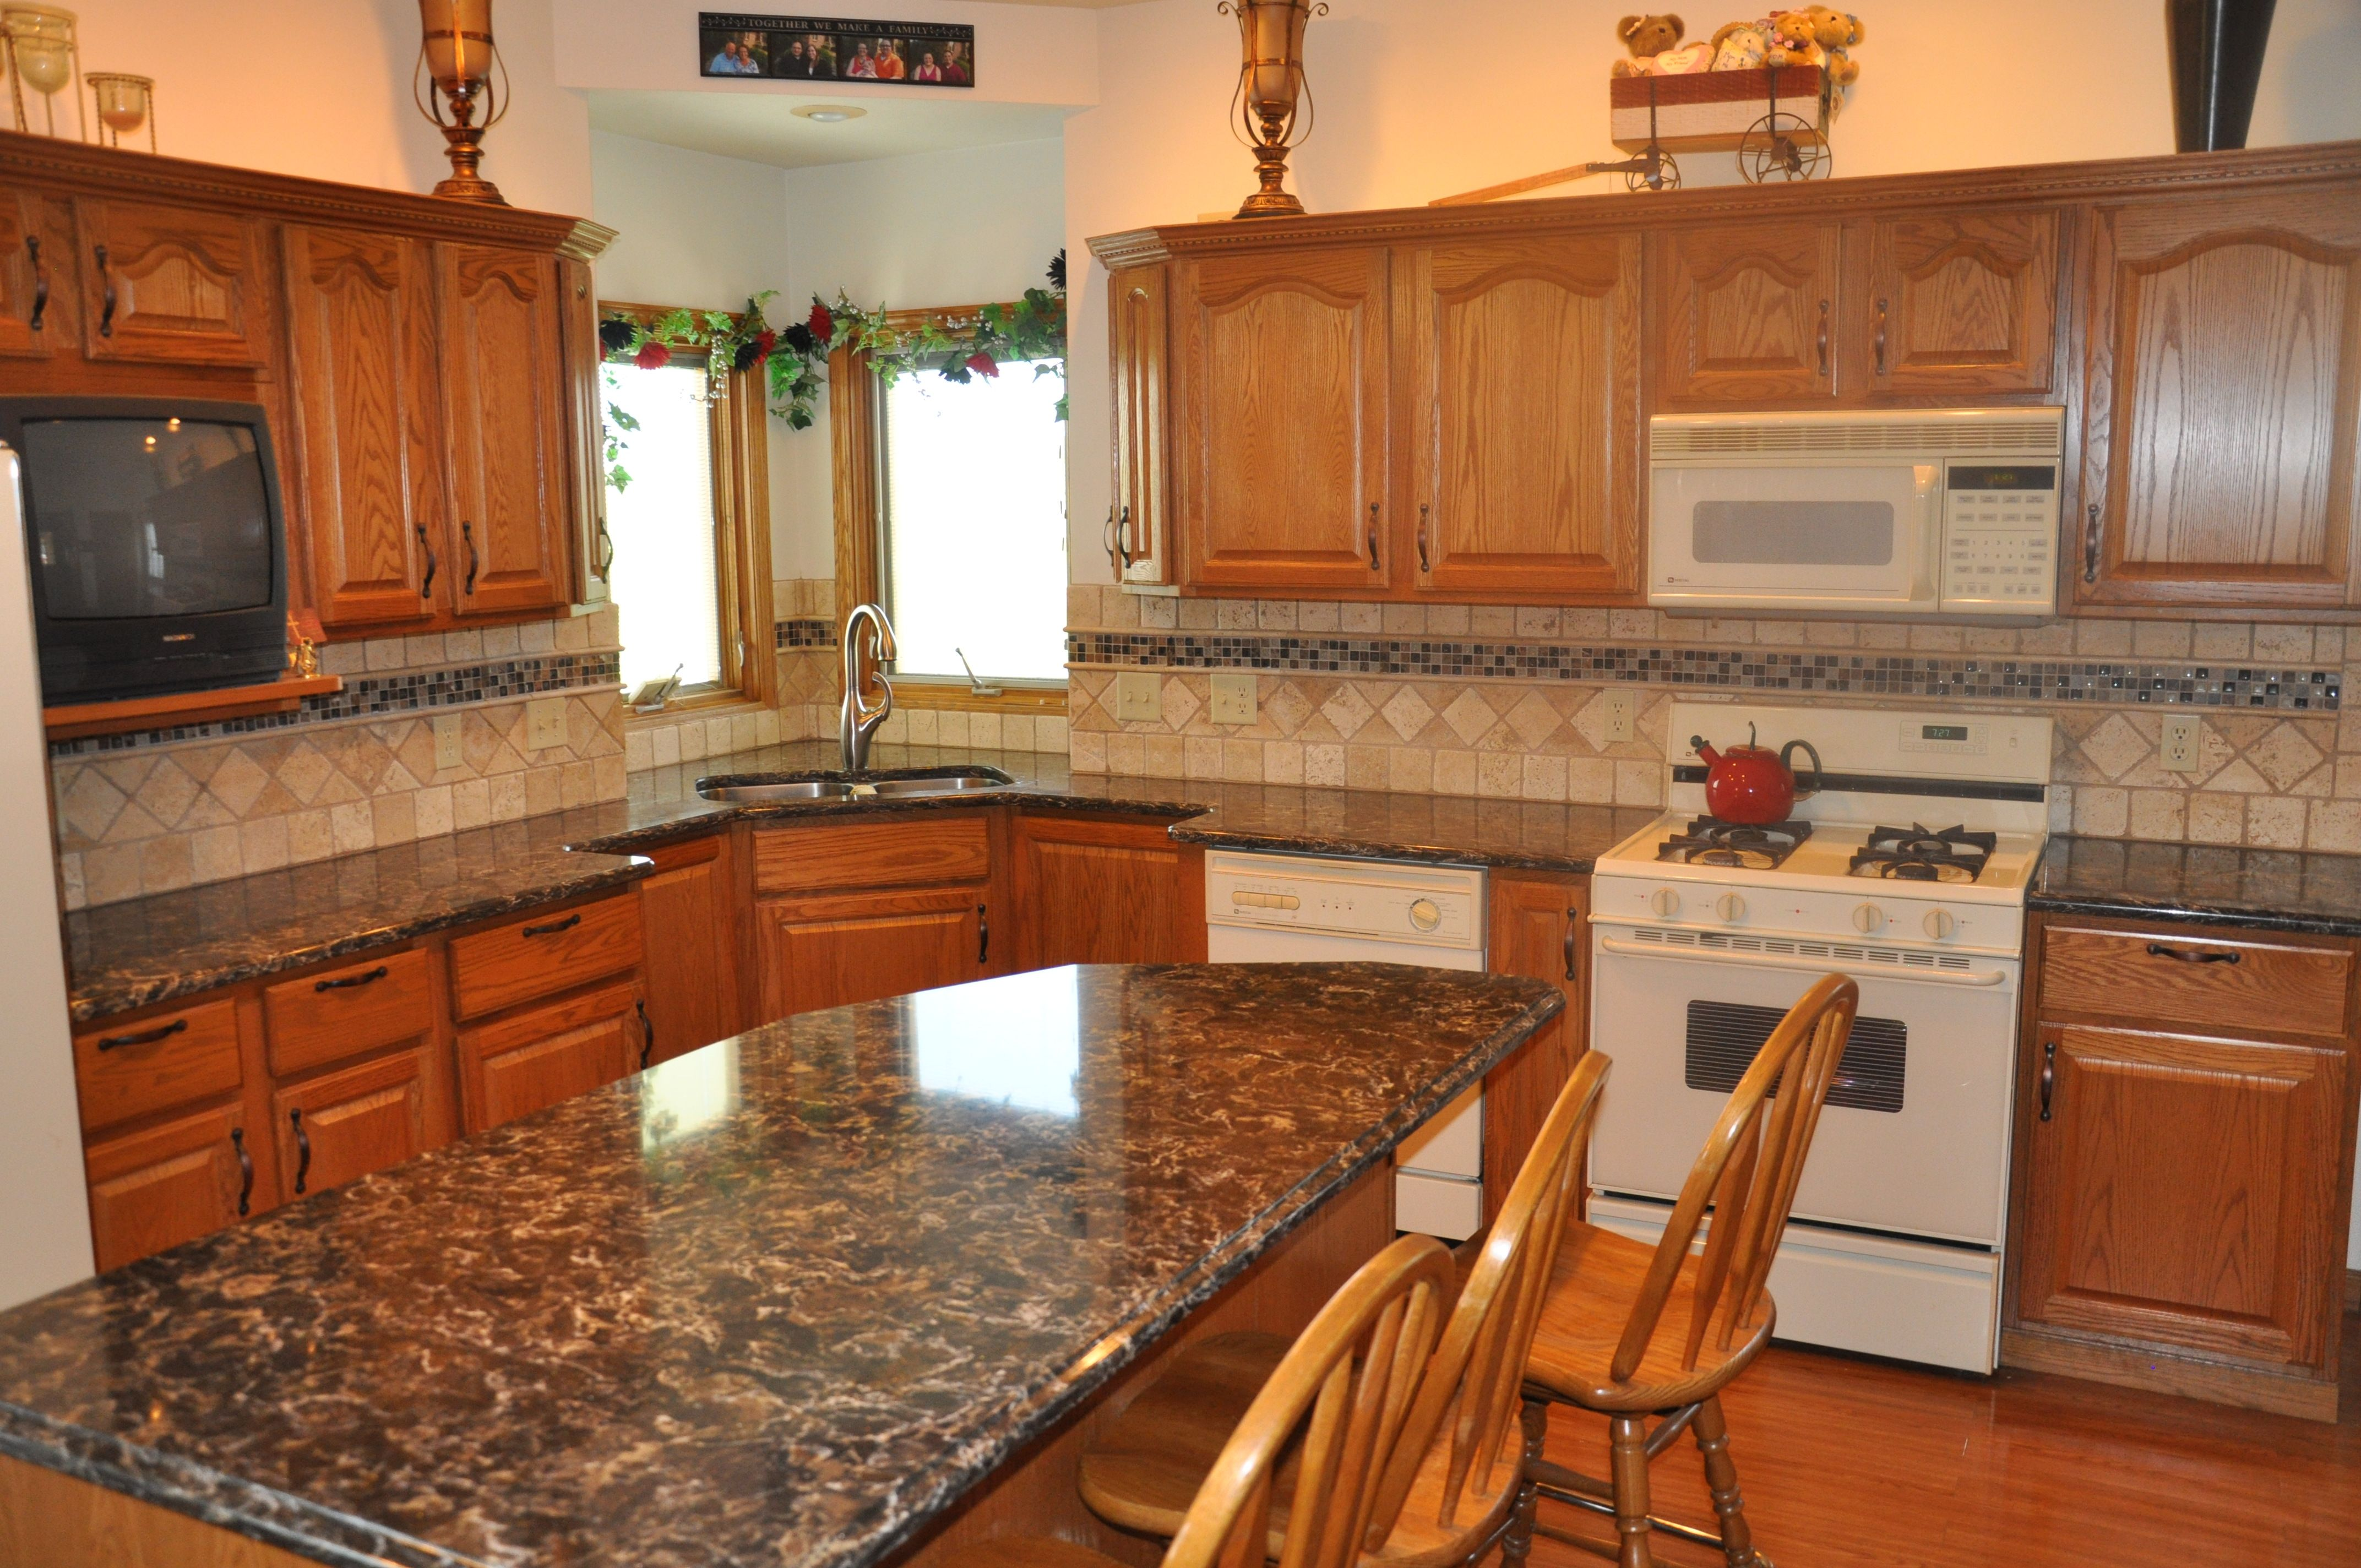 Oak Cabinets With Granite Countertops Pictures Cambria Quartz In Laneshaw Compliments Oak Cabinetry Very